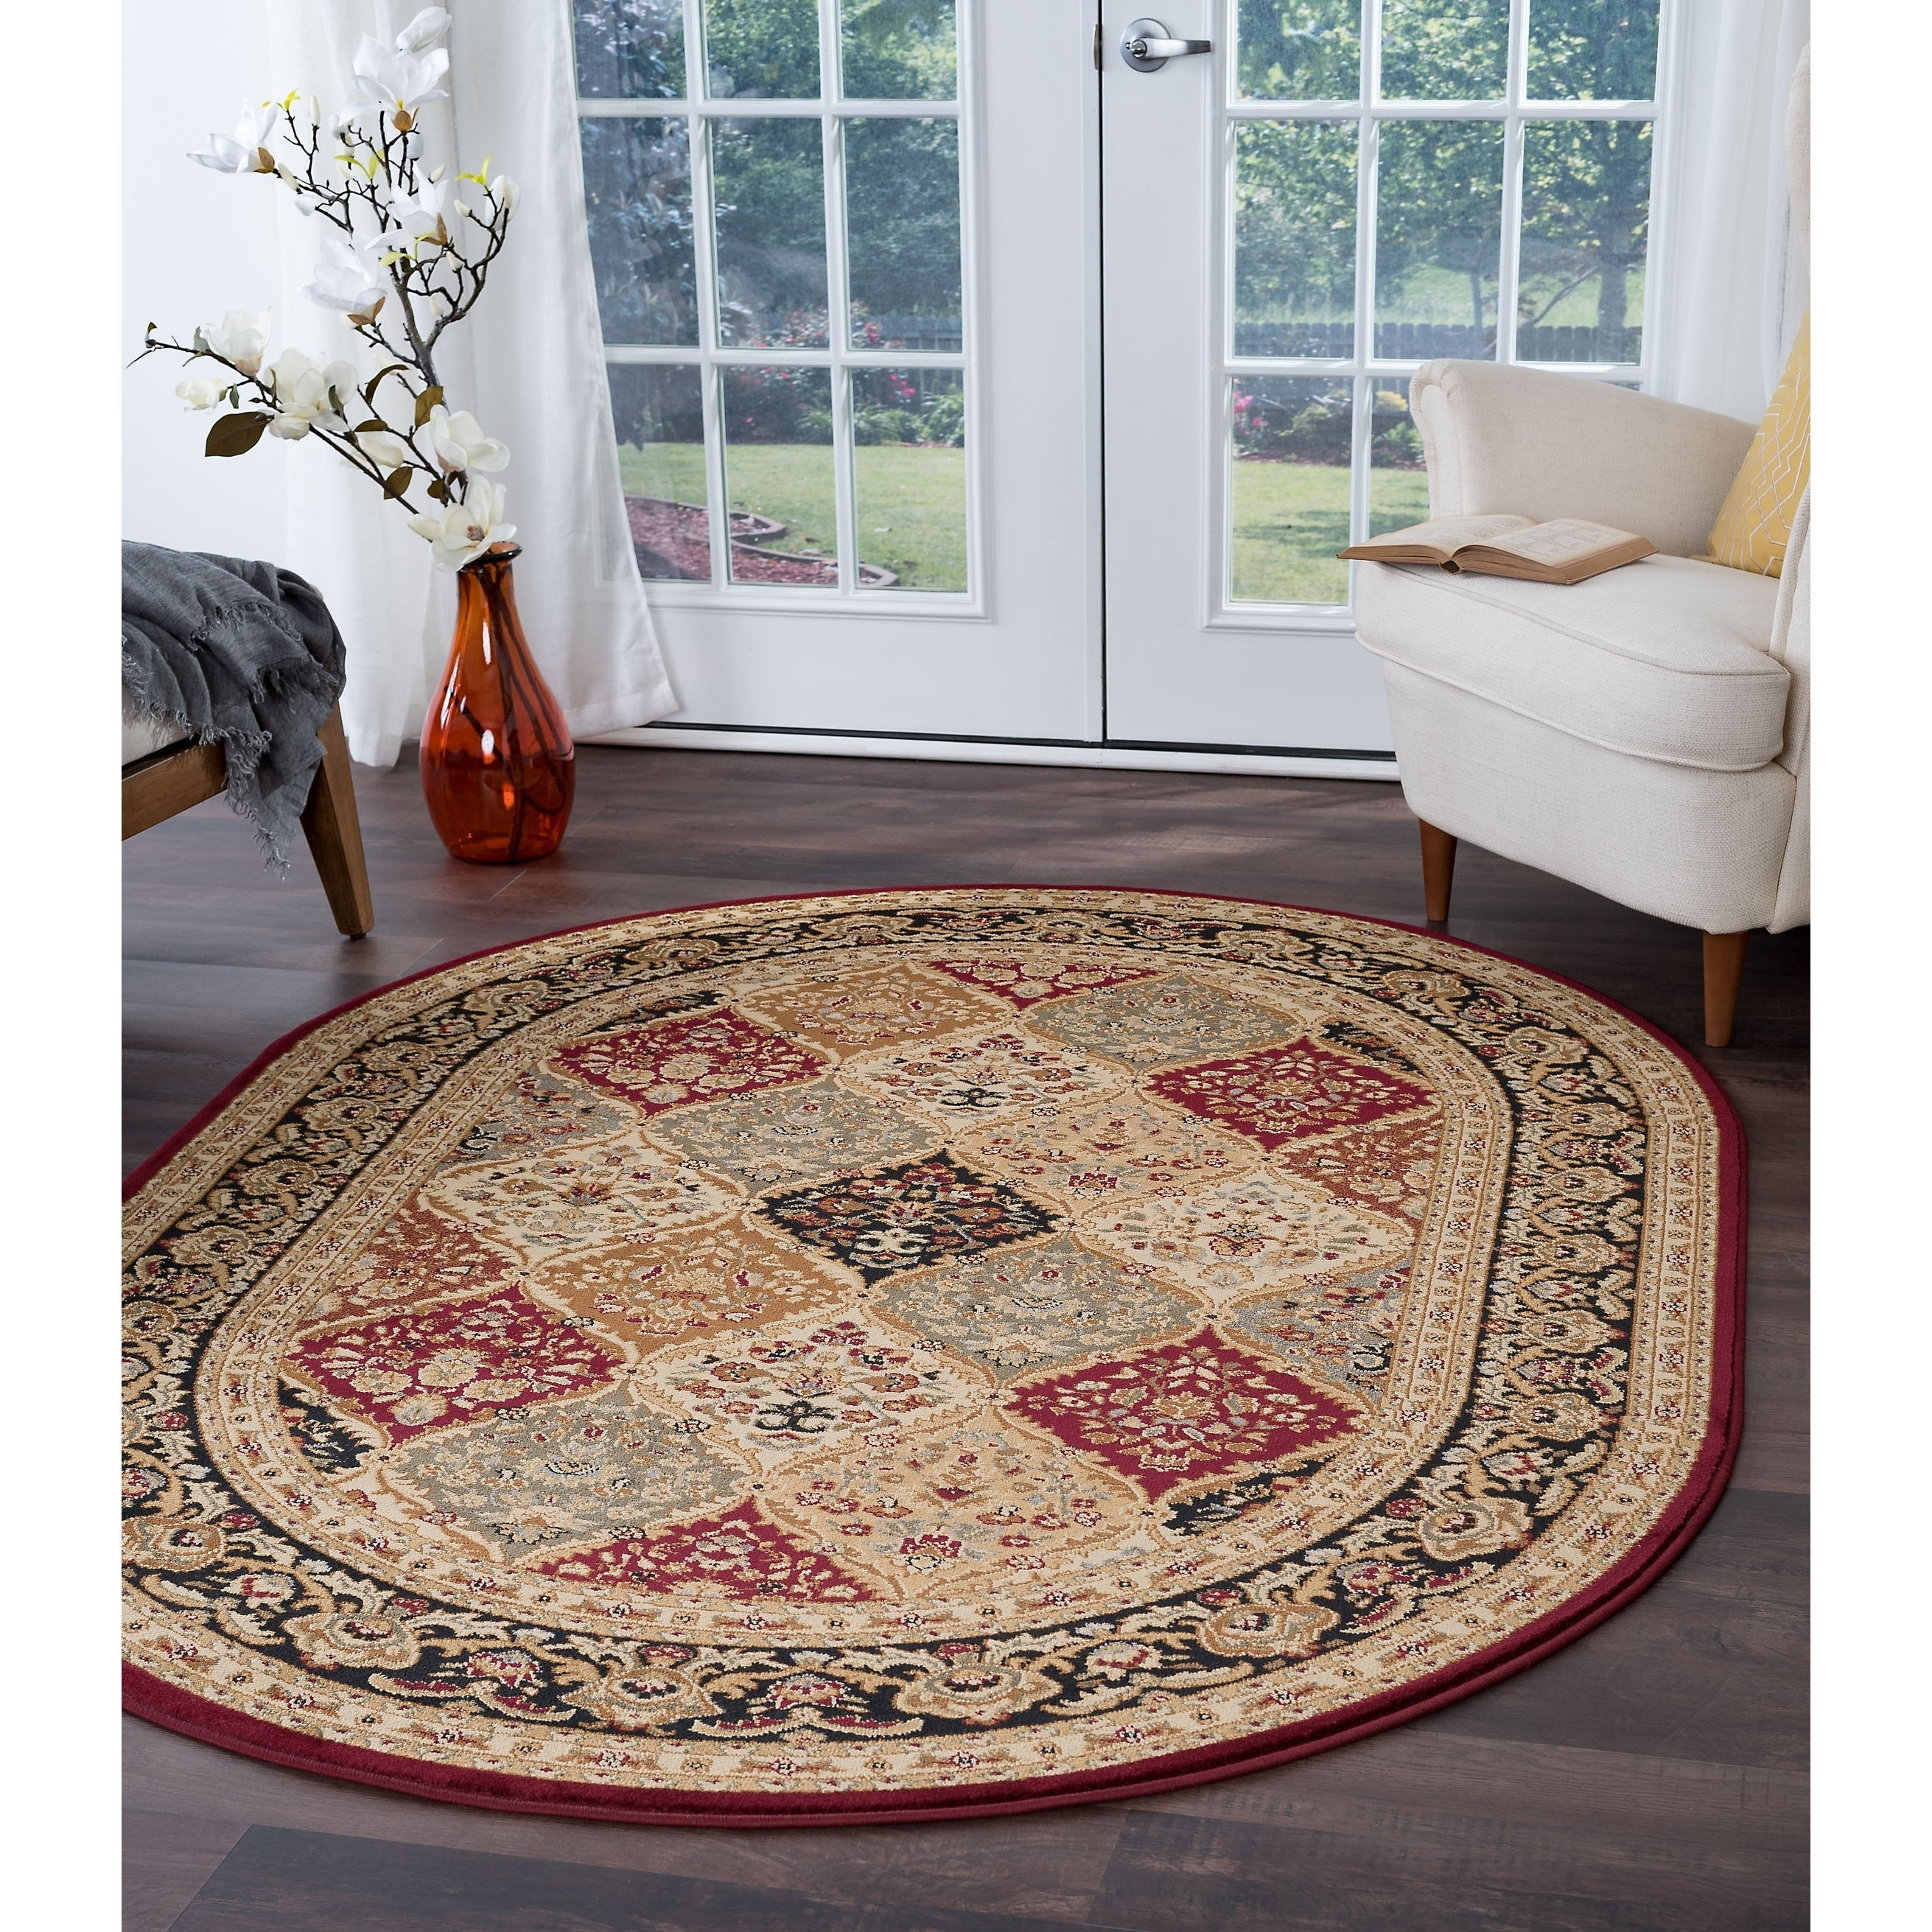 Alise Rugs Soho Traditional Oriental Oval Area Rug 5 3 X 7 3